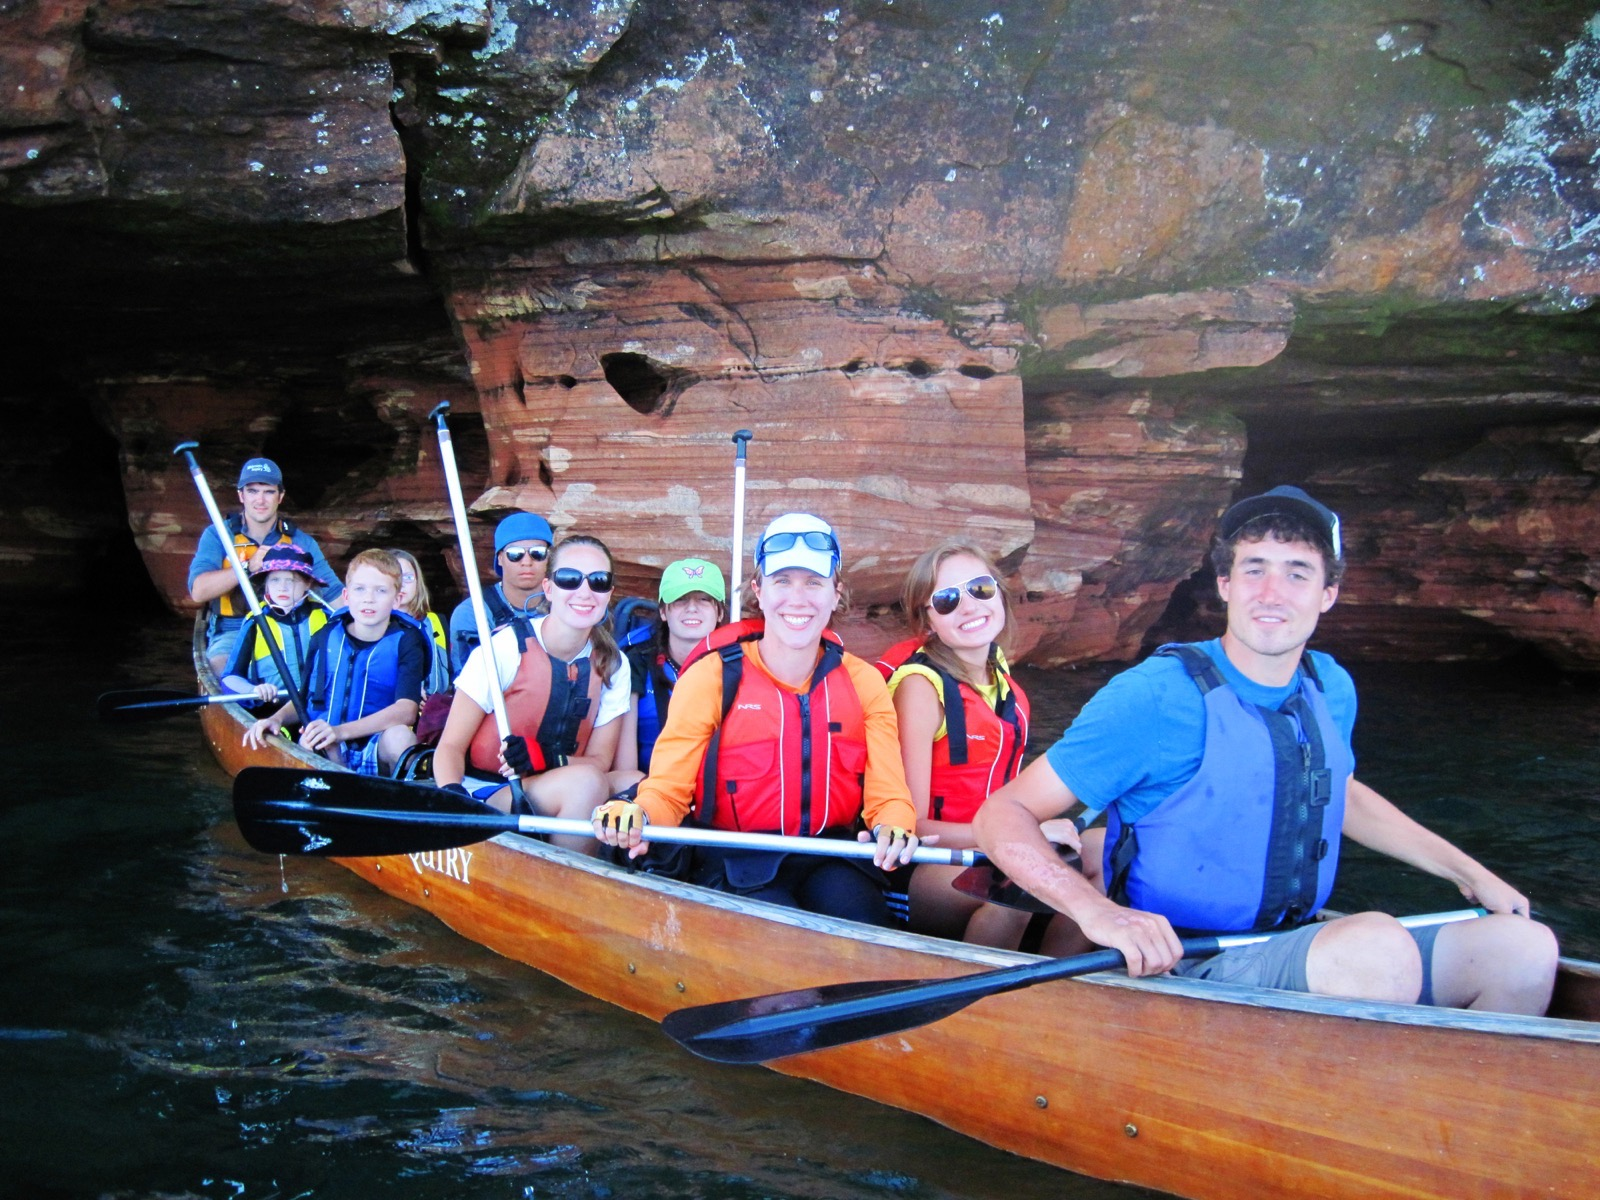 A group of people in a 24-foot Voyageur canoe in front of sea caves.